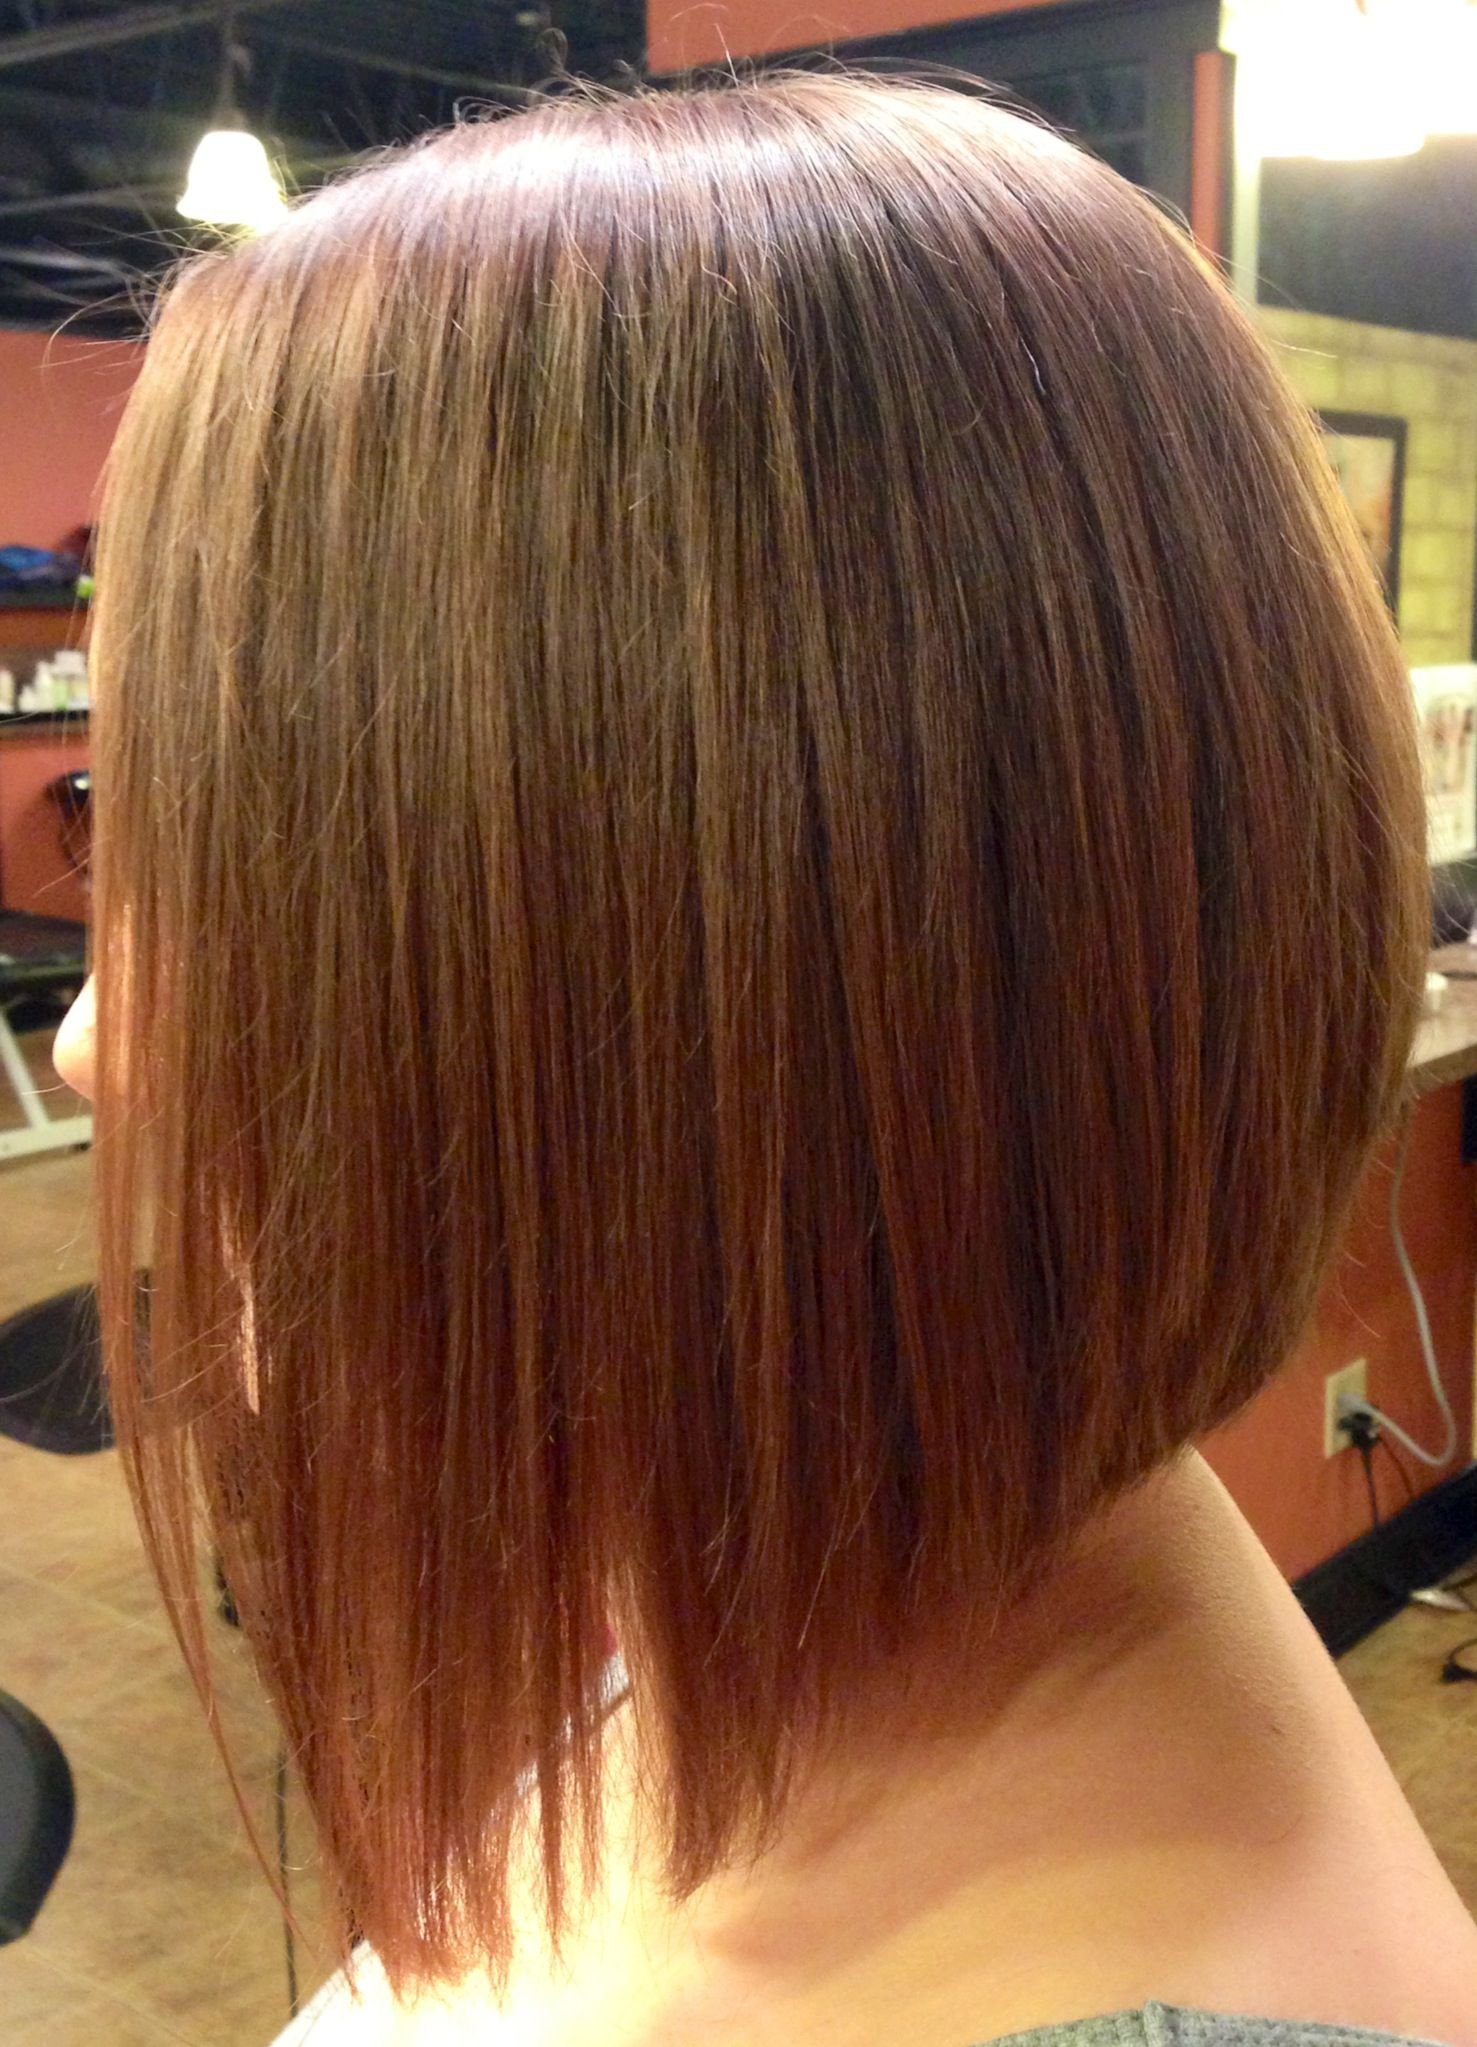 long inverted bob with a dramatic angle. minimal stacking in